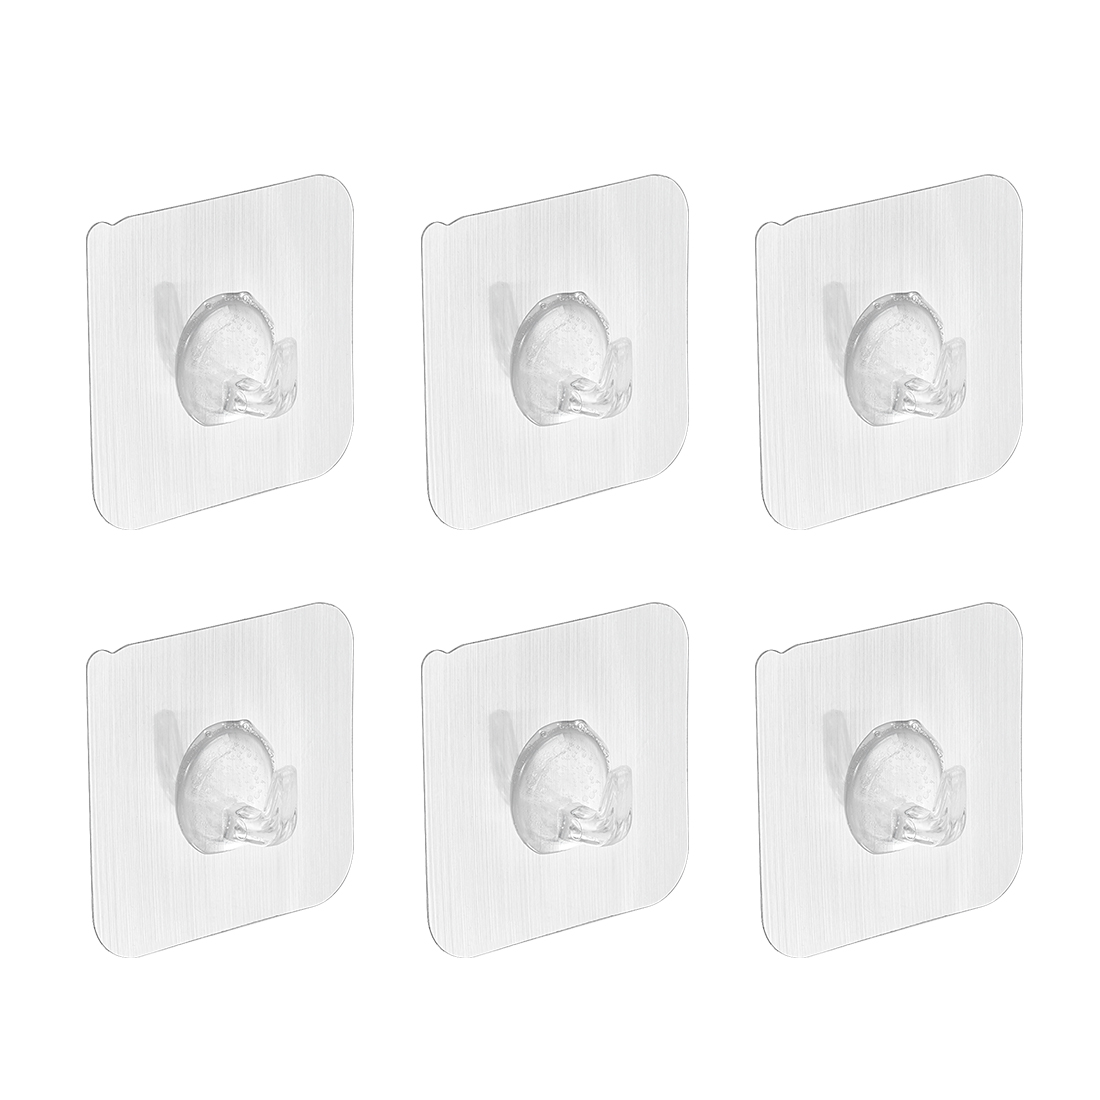 Wall Hooks Self Adhesive Hooks Waterproof Hook 60mmx60mm Silver Tone , 6pcs